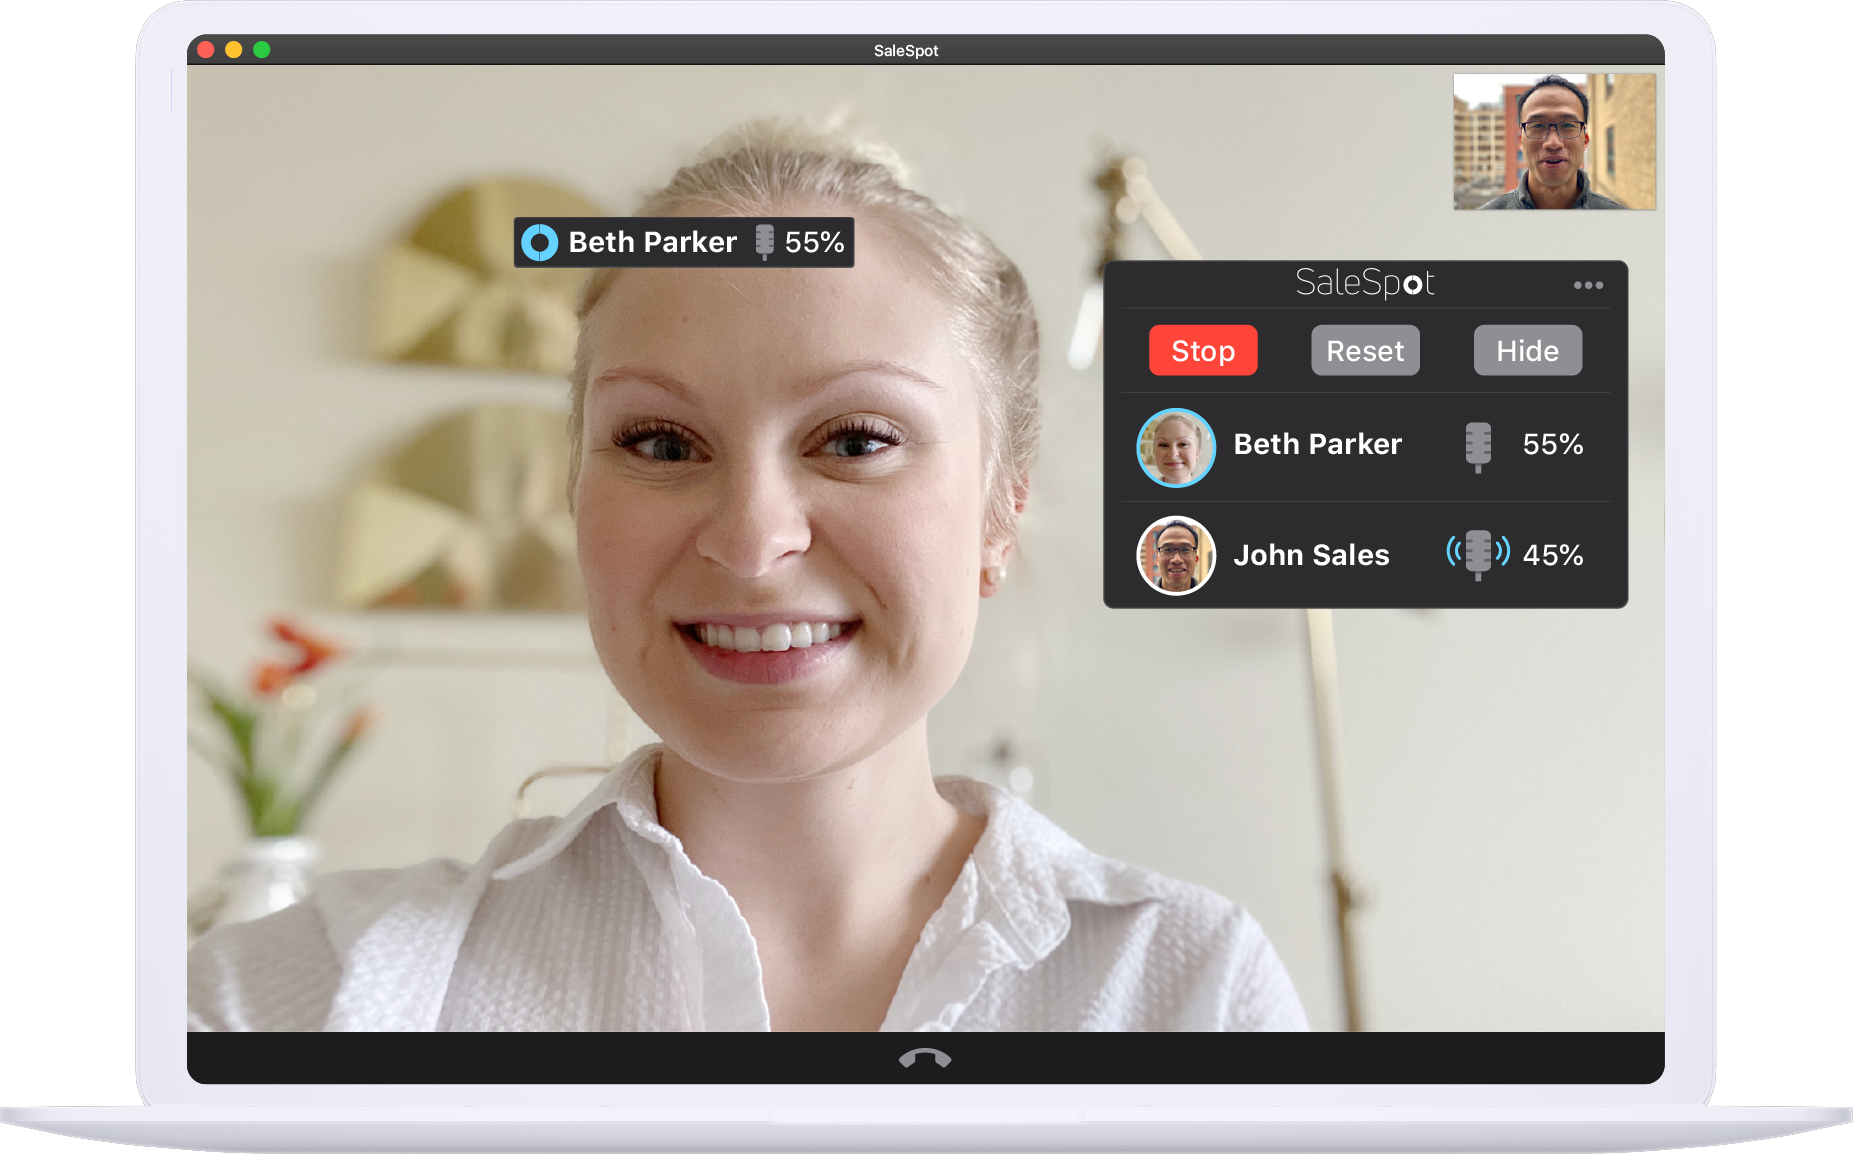 Demo of the SaleSpot interface providing sales call metrics during a sales video call.